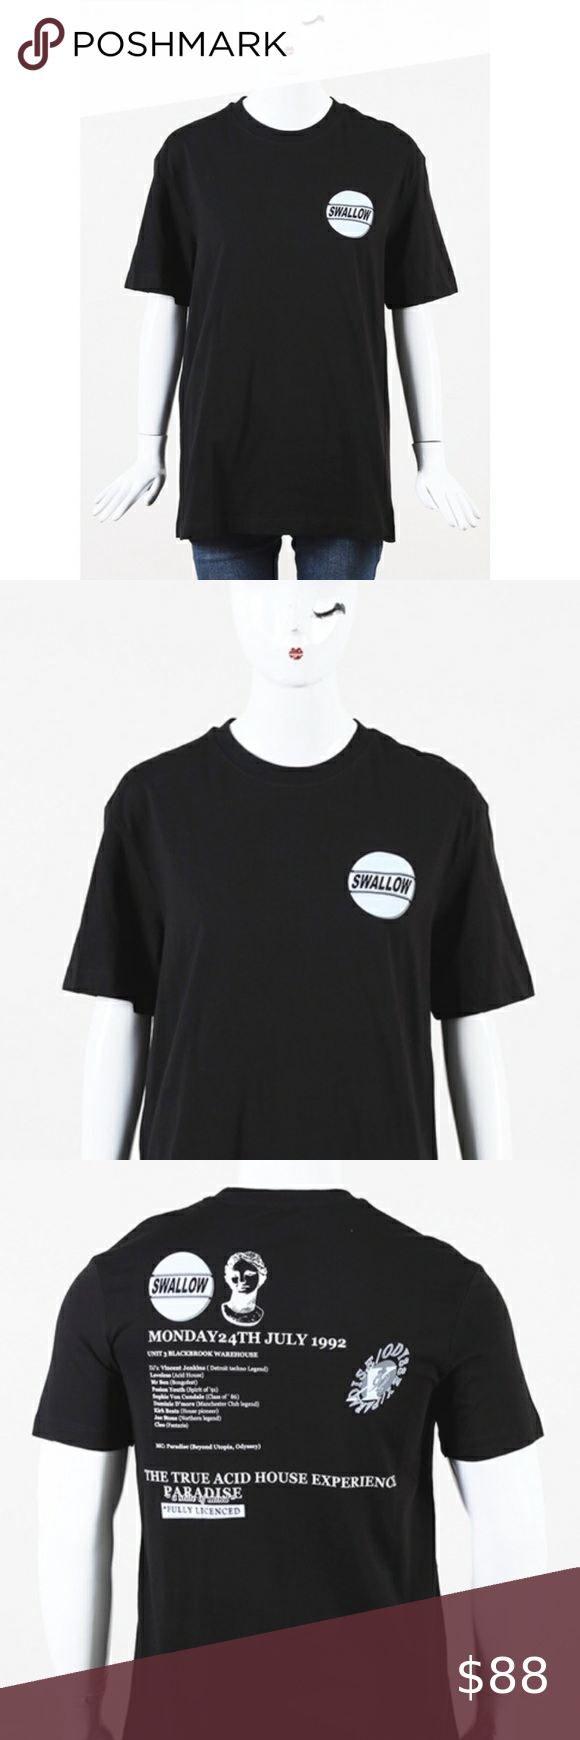 new mcq alexander mcqueen swallow graphic tee in 2020 clothes design mcq alexander mcqueen graphic tees pinterest